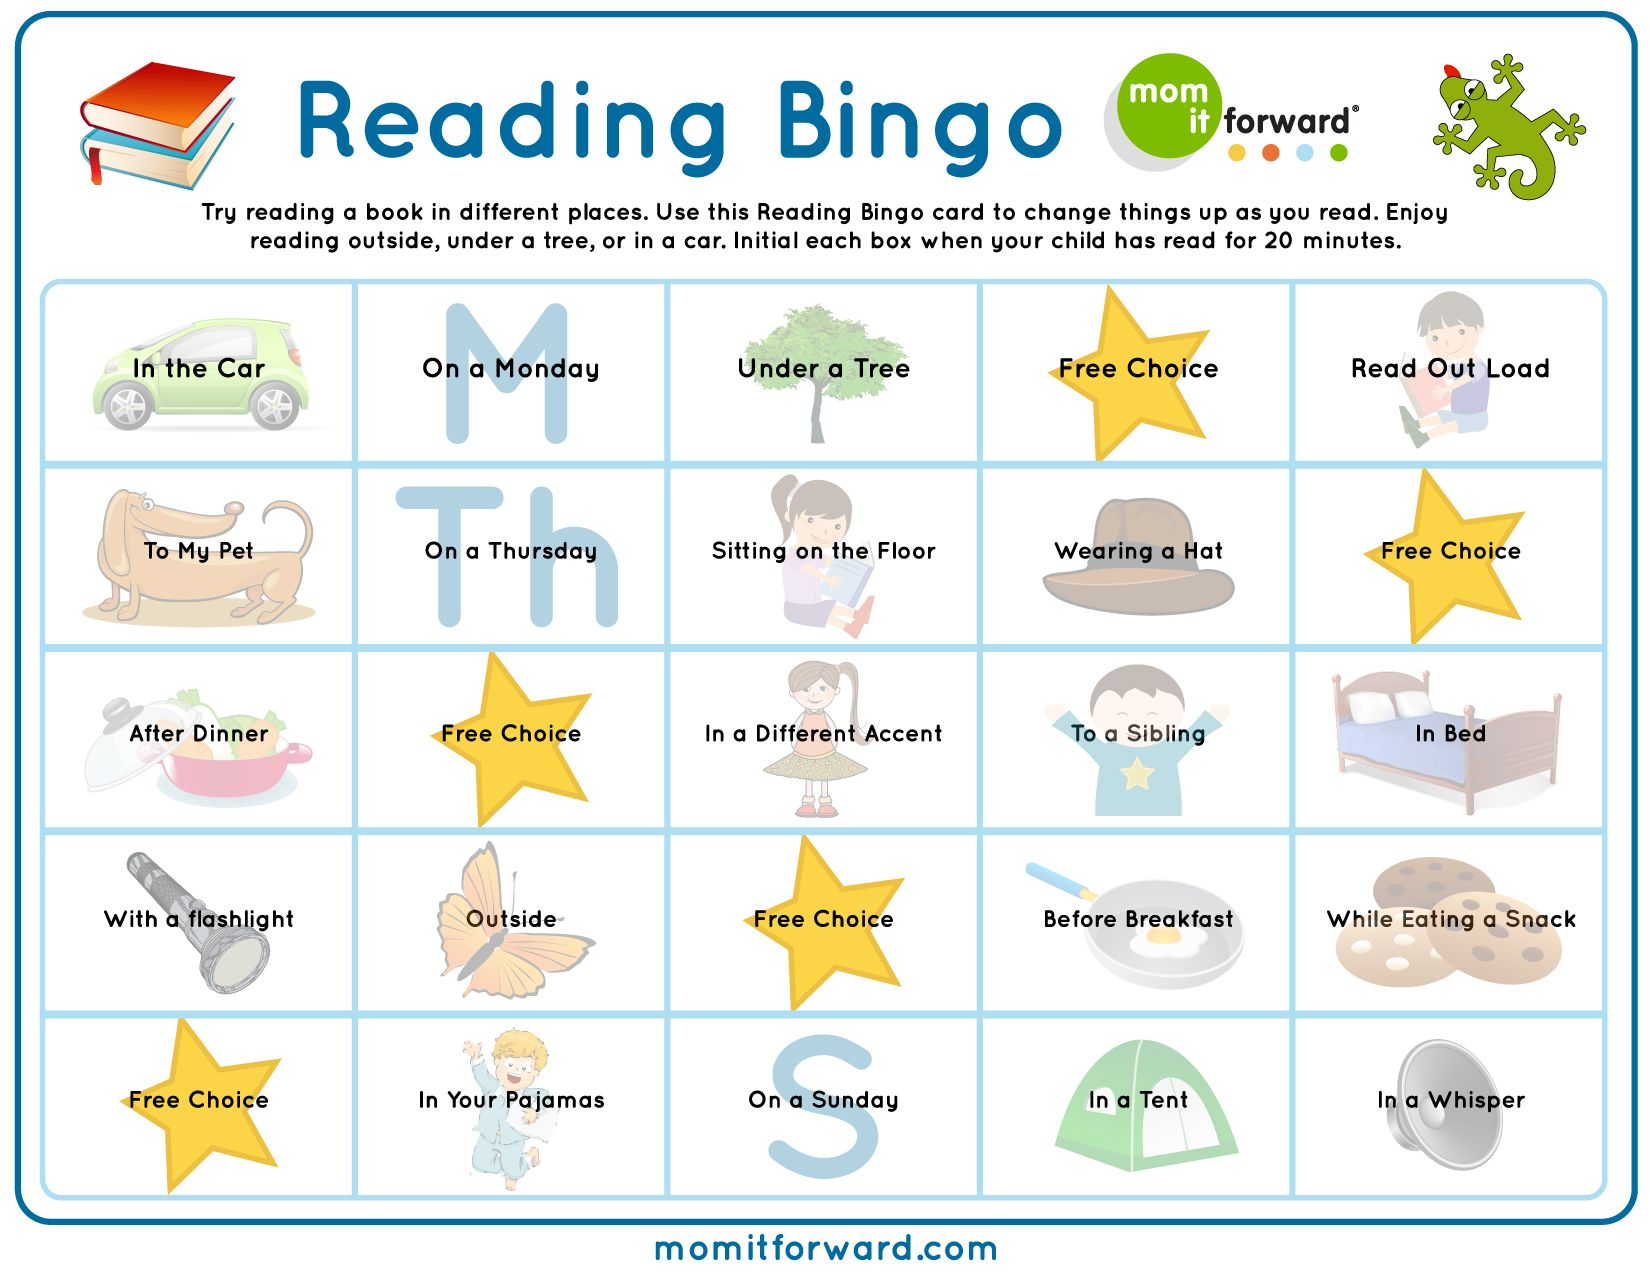 Have Fun During The Summer With The Reading Bingo